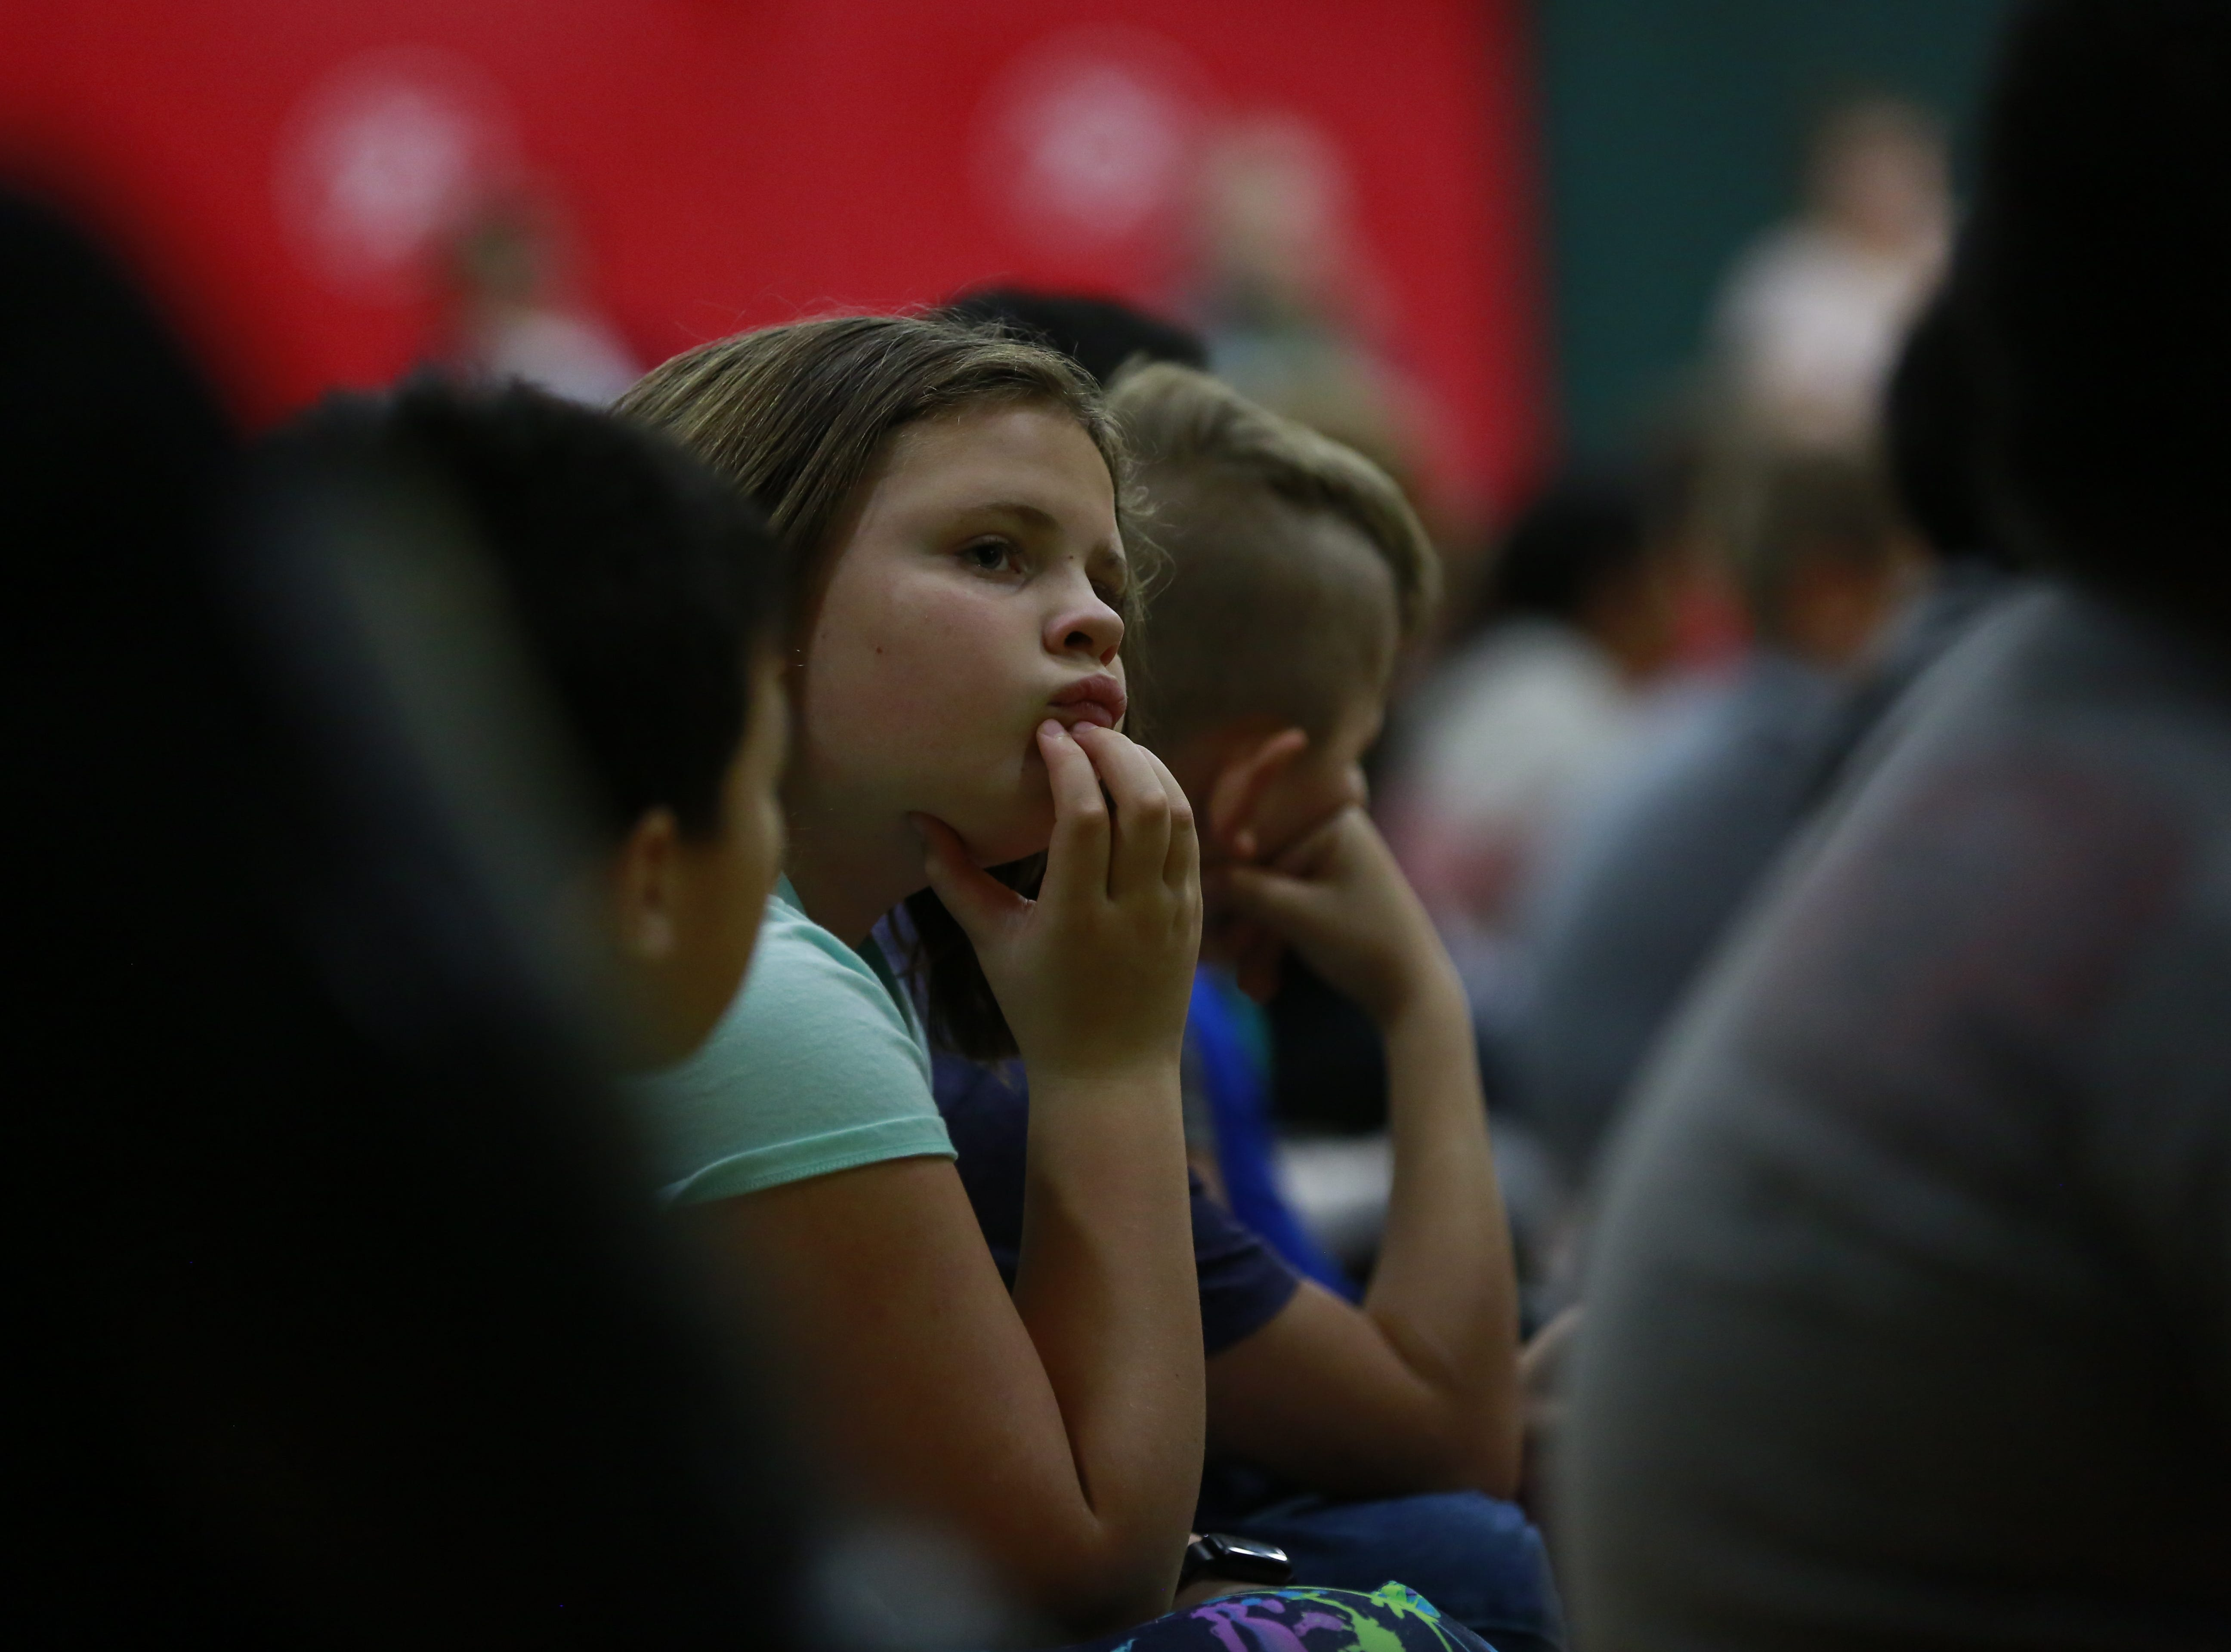 Students listen to former MSU basketball player Anthony Ianni talks about bullying Monday, Oct. 15, 2018, during the Anti-Bullying Relentless Tour to Visit Wisconsin at Weston Elementary School in Weston, Wis. T'xer Zhon Kha/USA TODAY NETWORK-Wisconsin